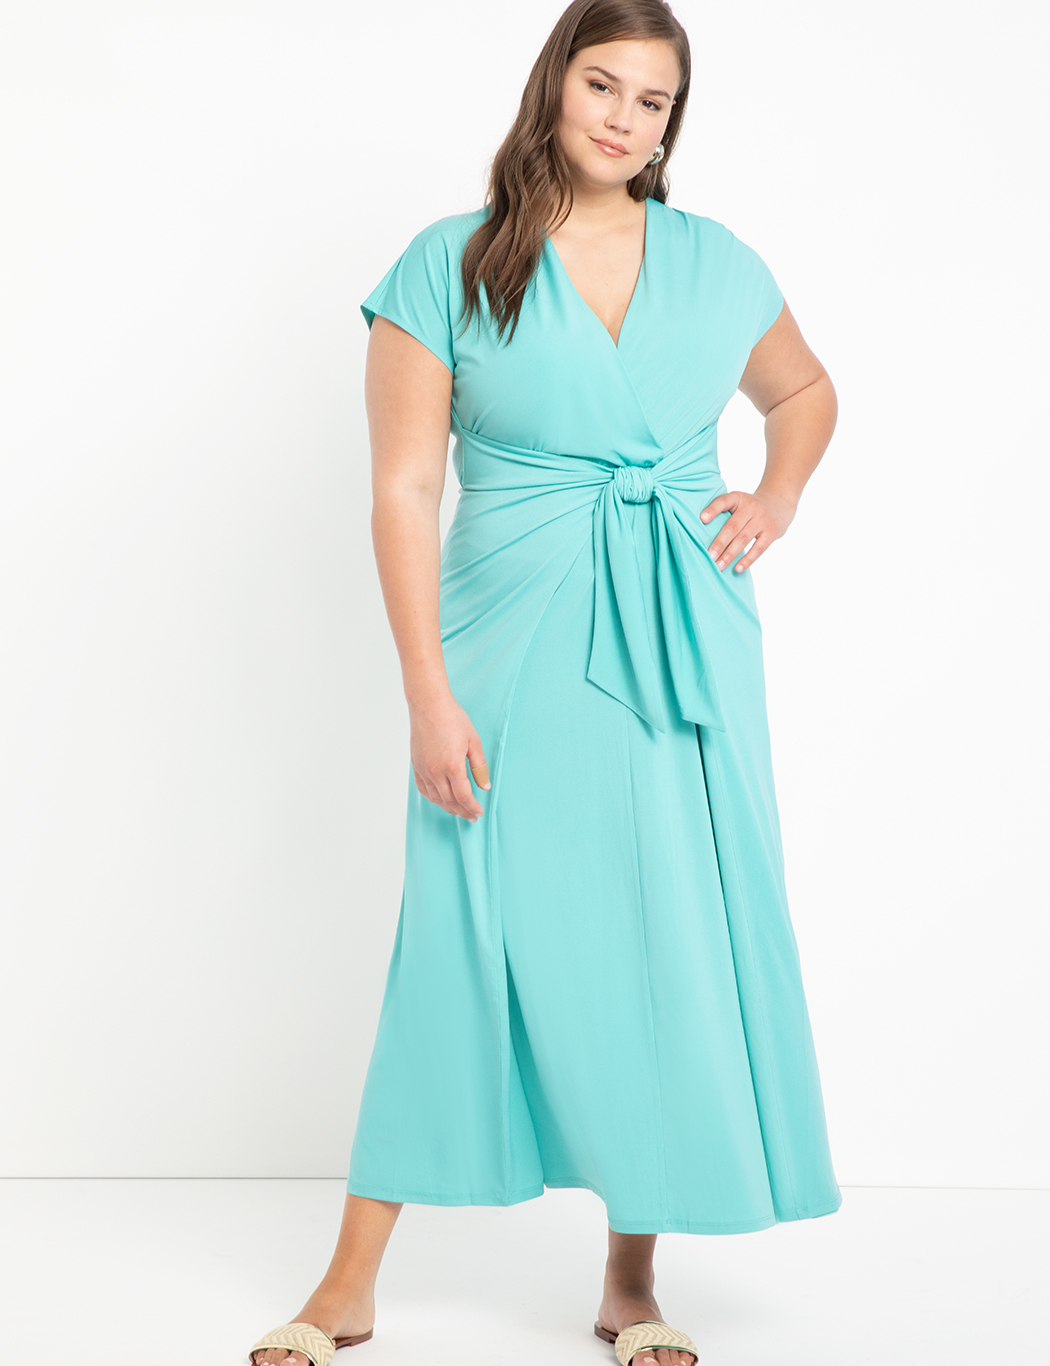 Easy Maxi Dress With Wrap Tie Skirt 22